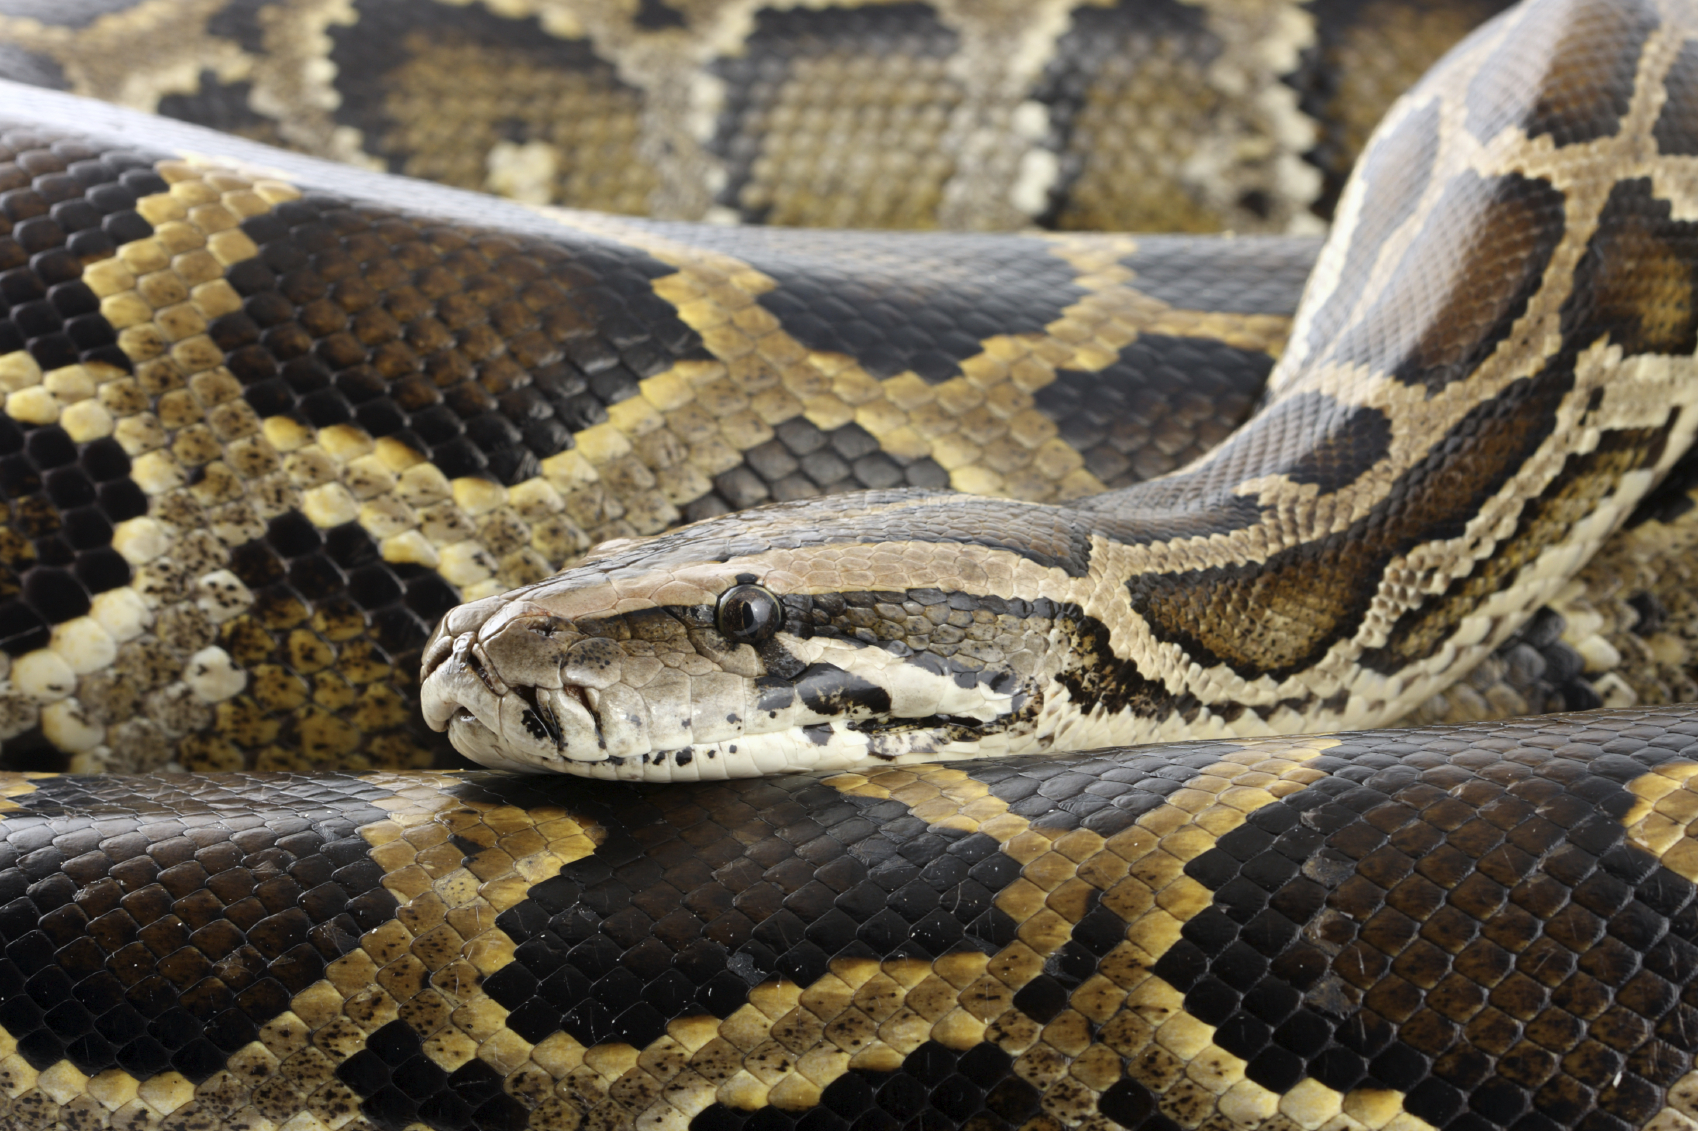 PYTHON GOES MISSING IN GLOUCESTER